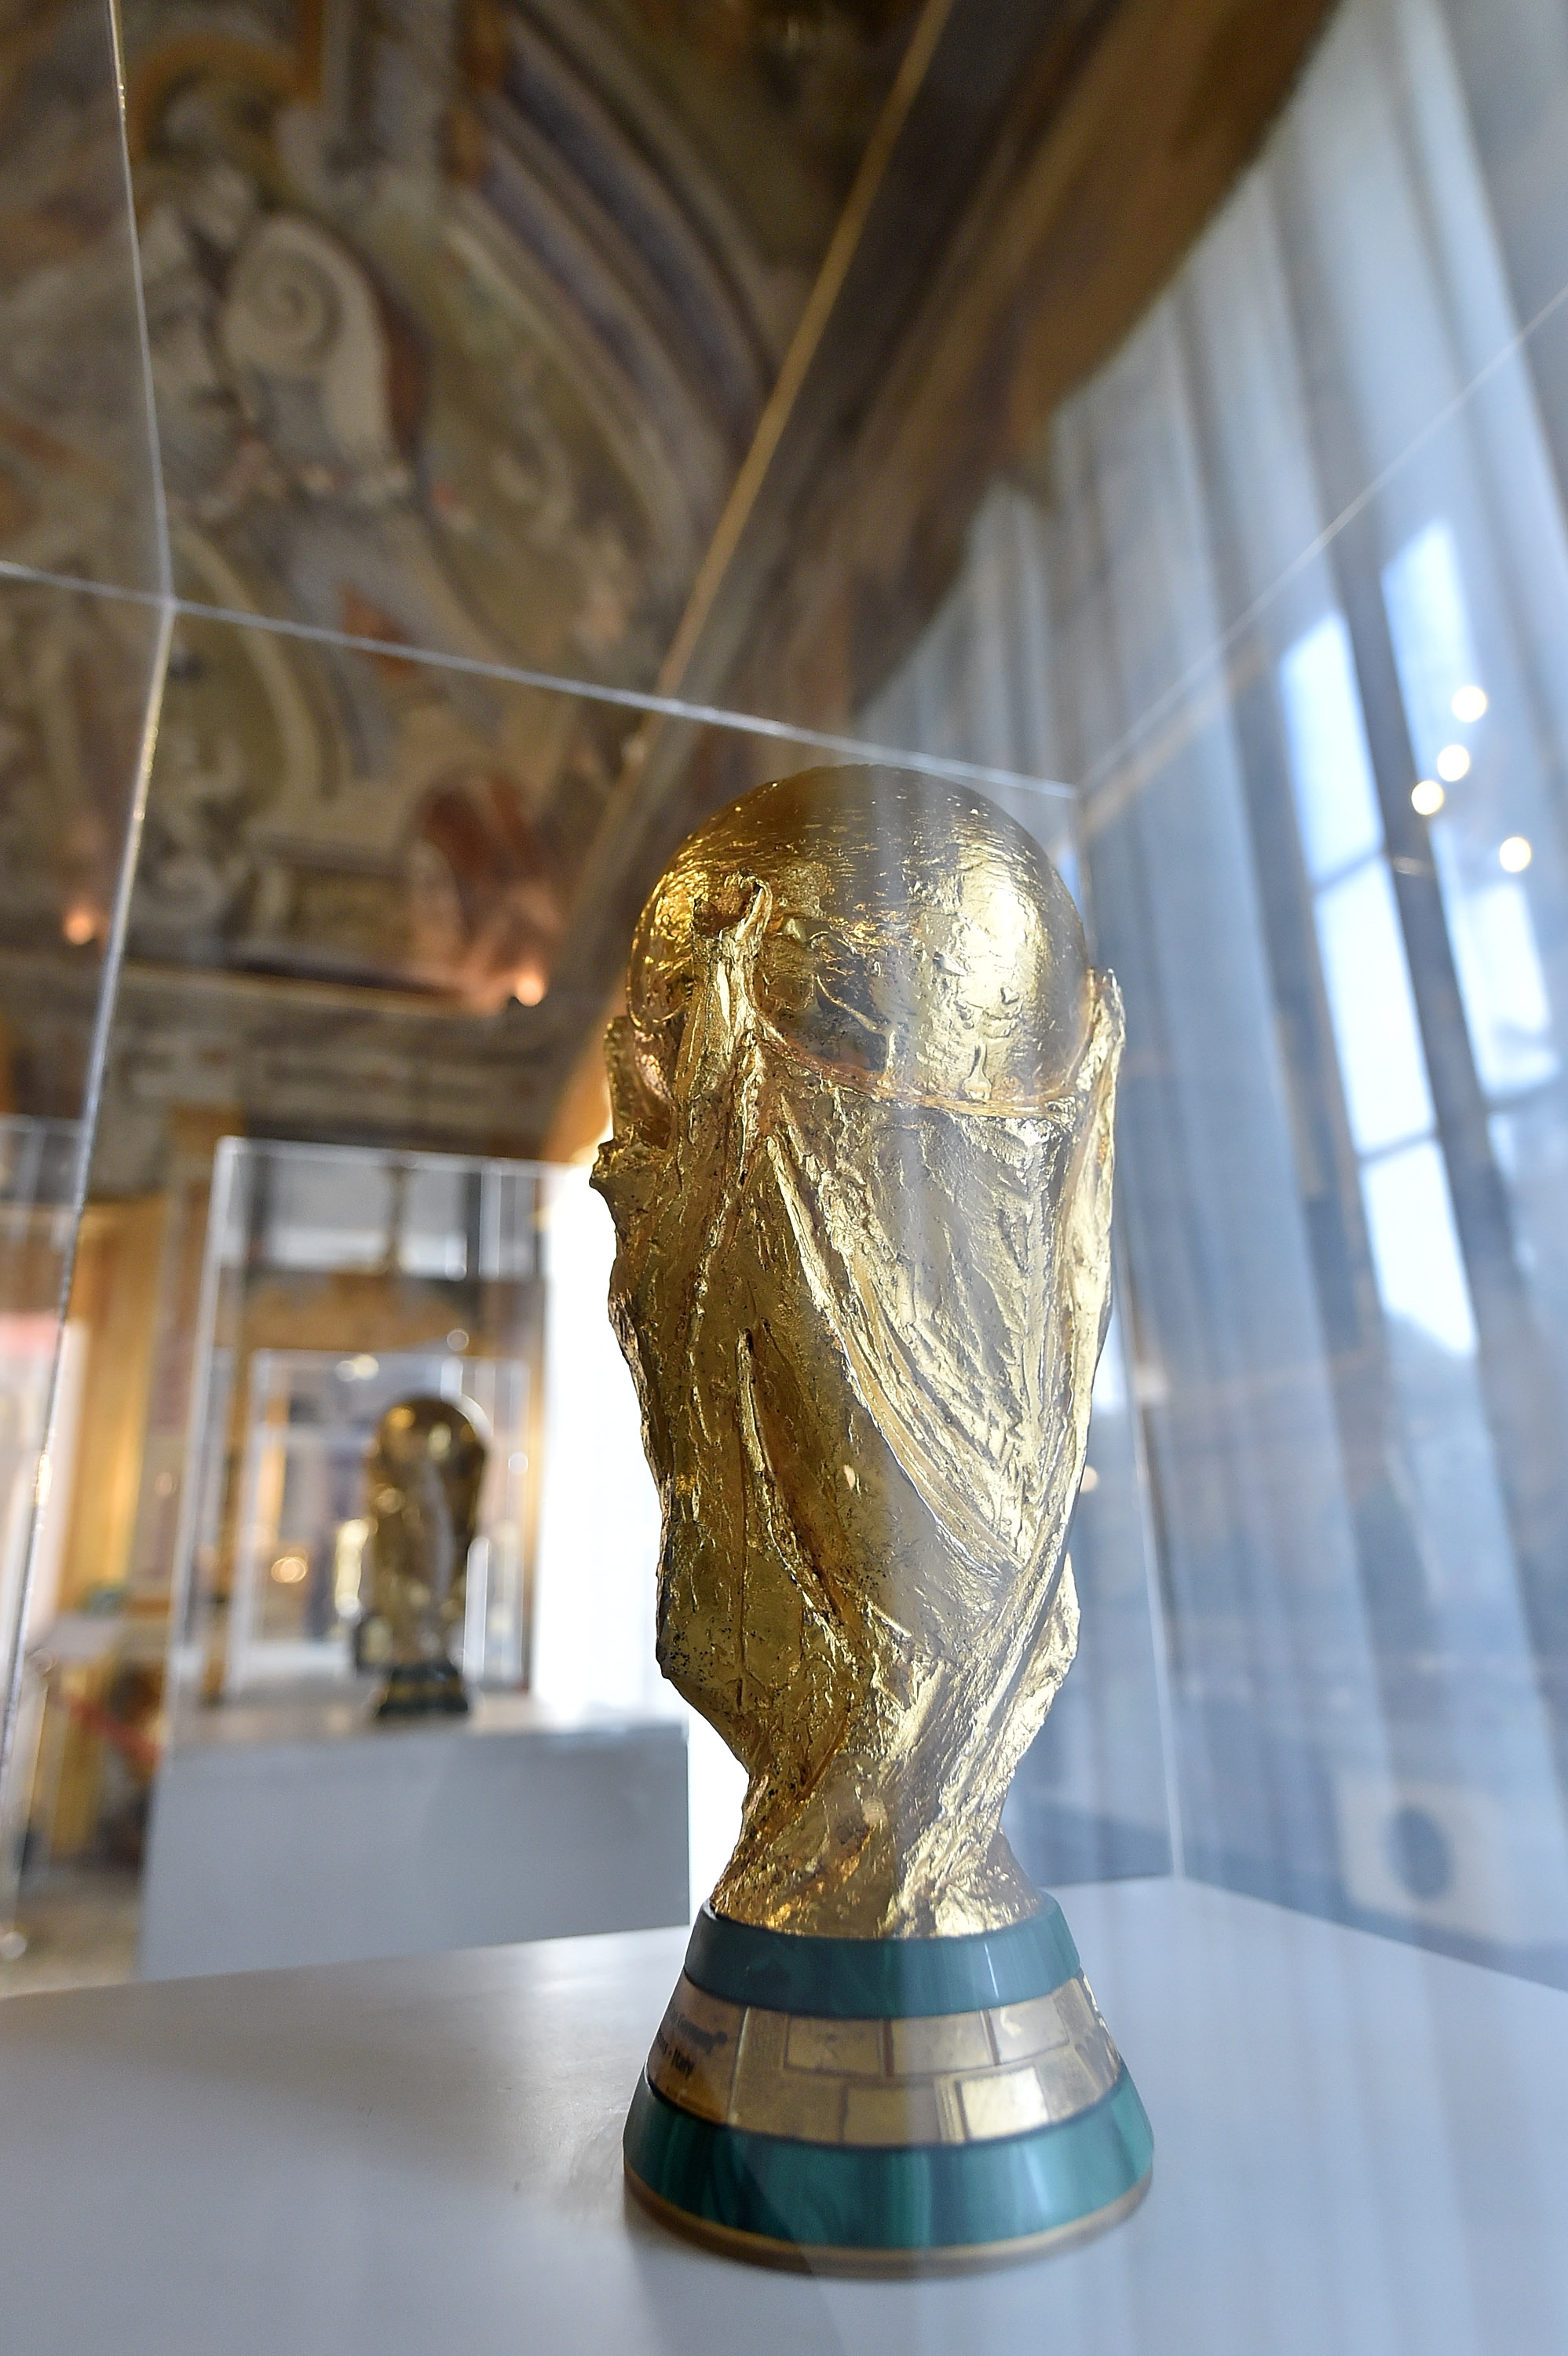 Italian Football Federation Trophies And Memorabilia Are Displayed In Palermo